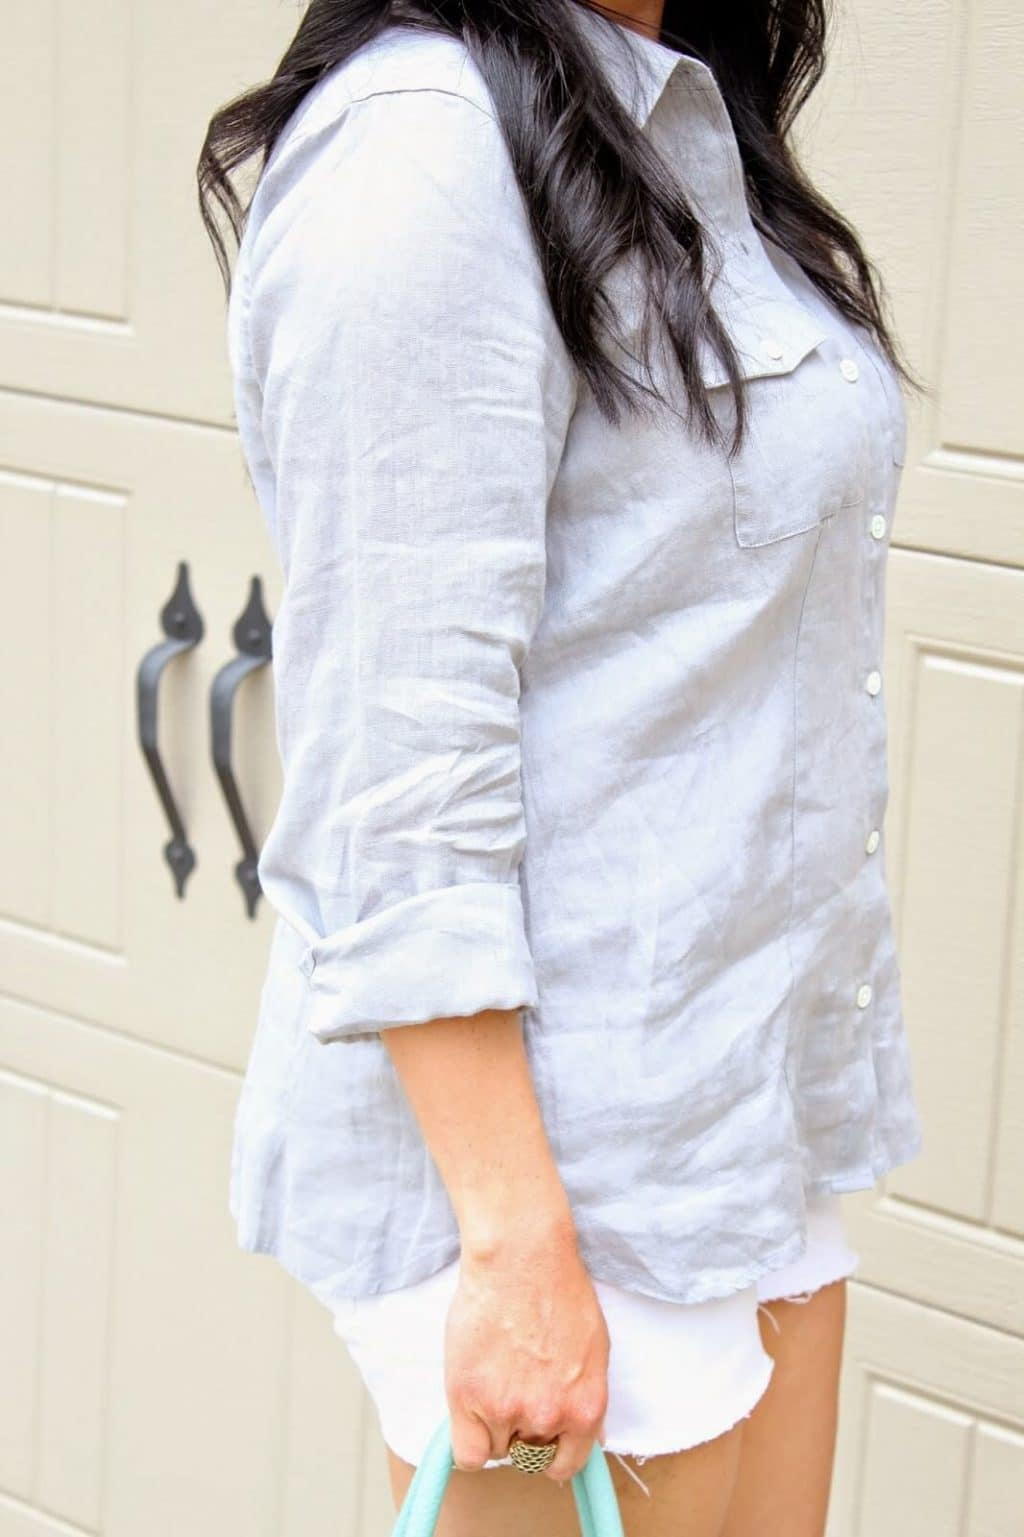 J. JIll Linen Shirt, White Shorts